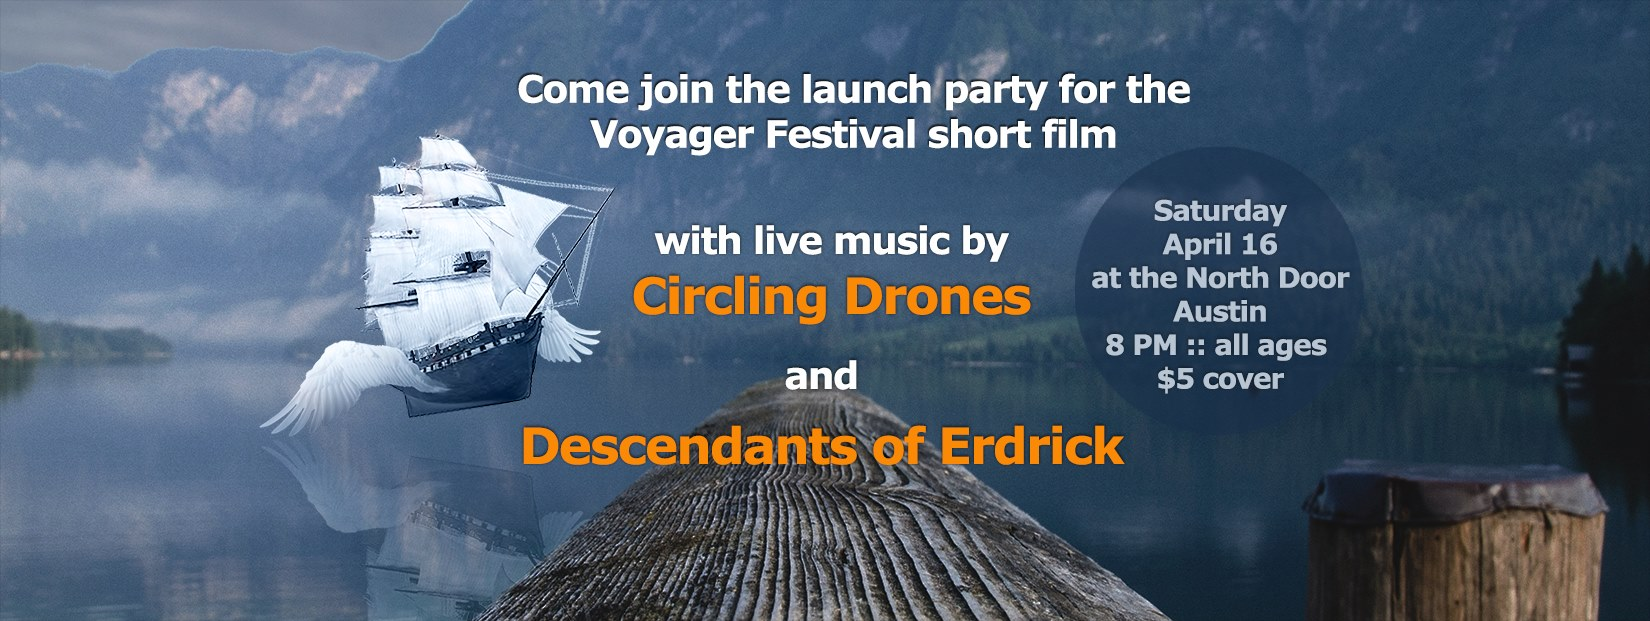 Voyager Film Launch Party